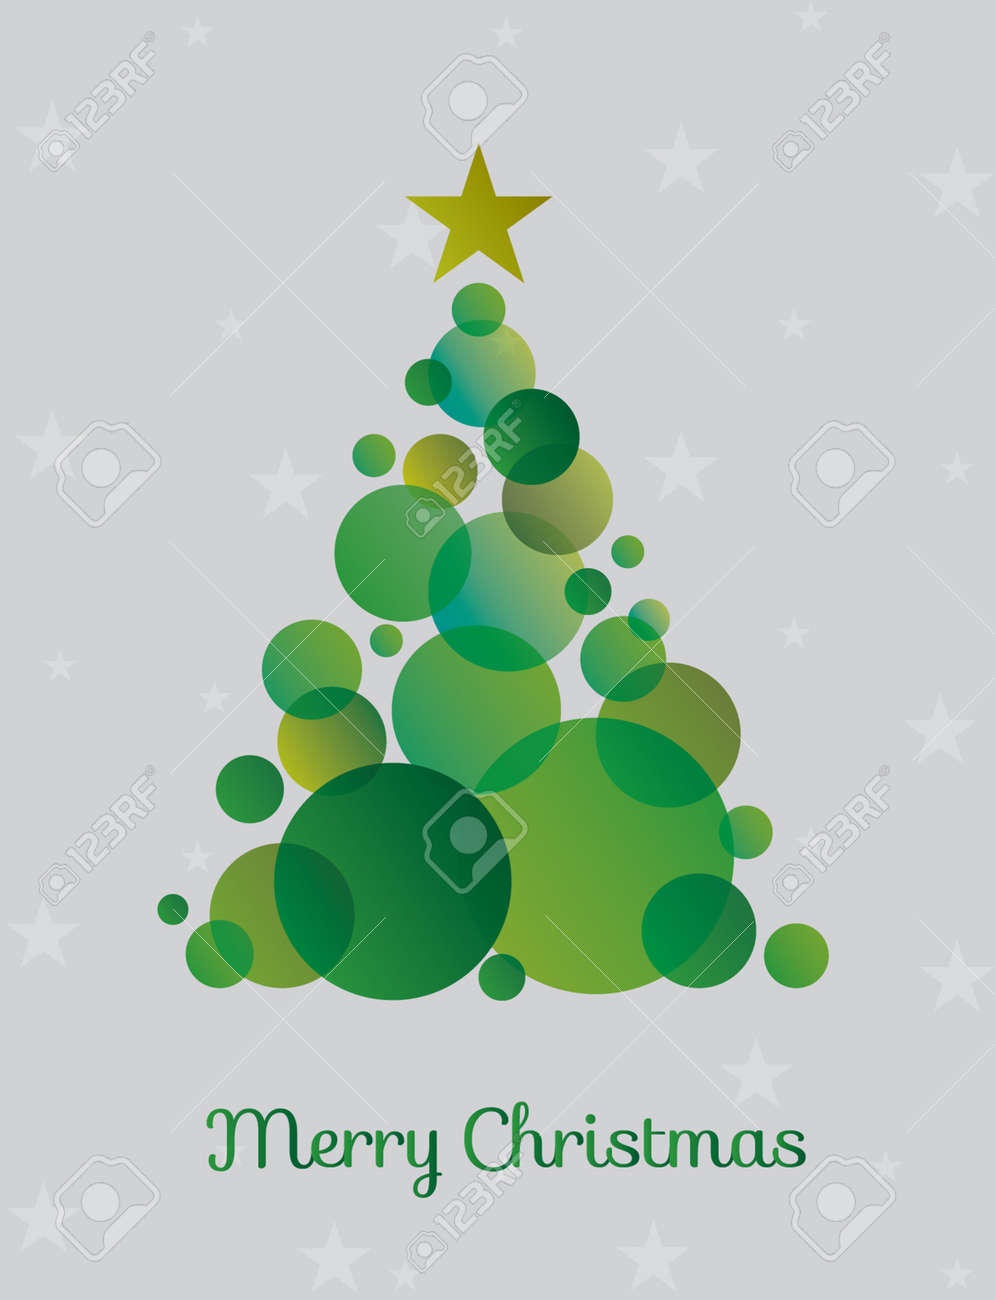 Christmas tree made green circles surrounded by stars. Vector illustration - 90743754